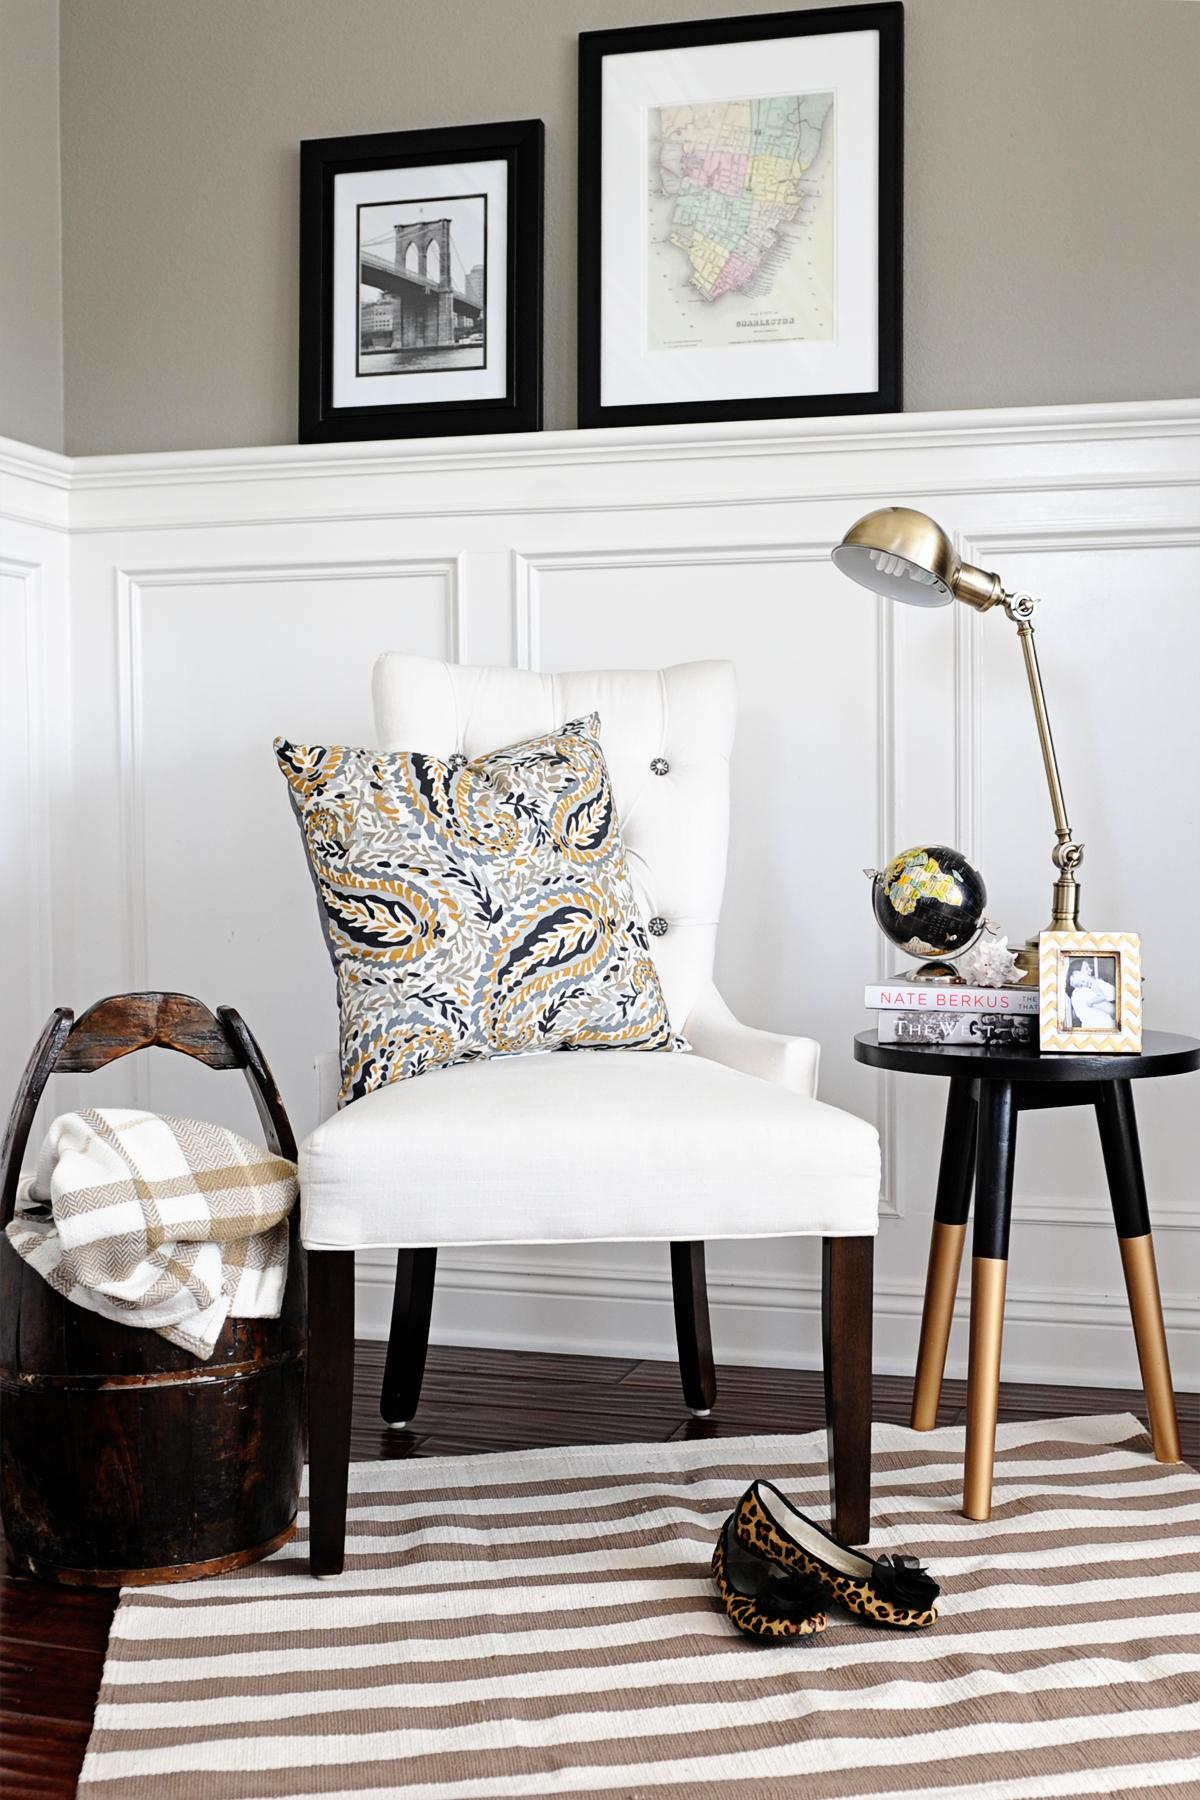 Tips and Inspiration for making your own Reading Nook in your home. The perfect way to transform that awkward corner in your home. You will love this inspiration from this week's Linky Party!